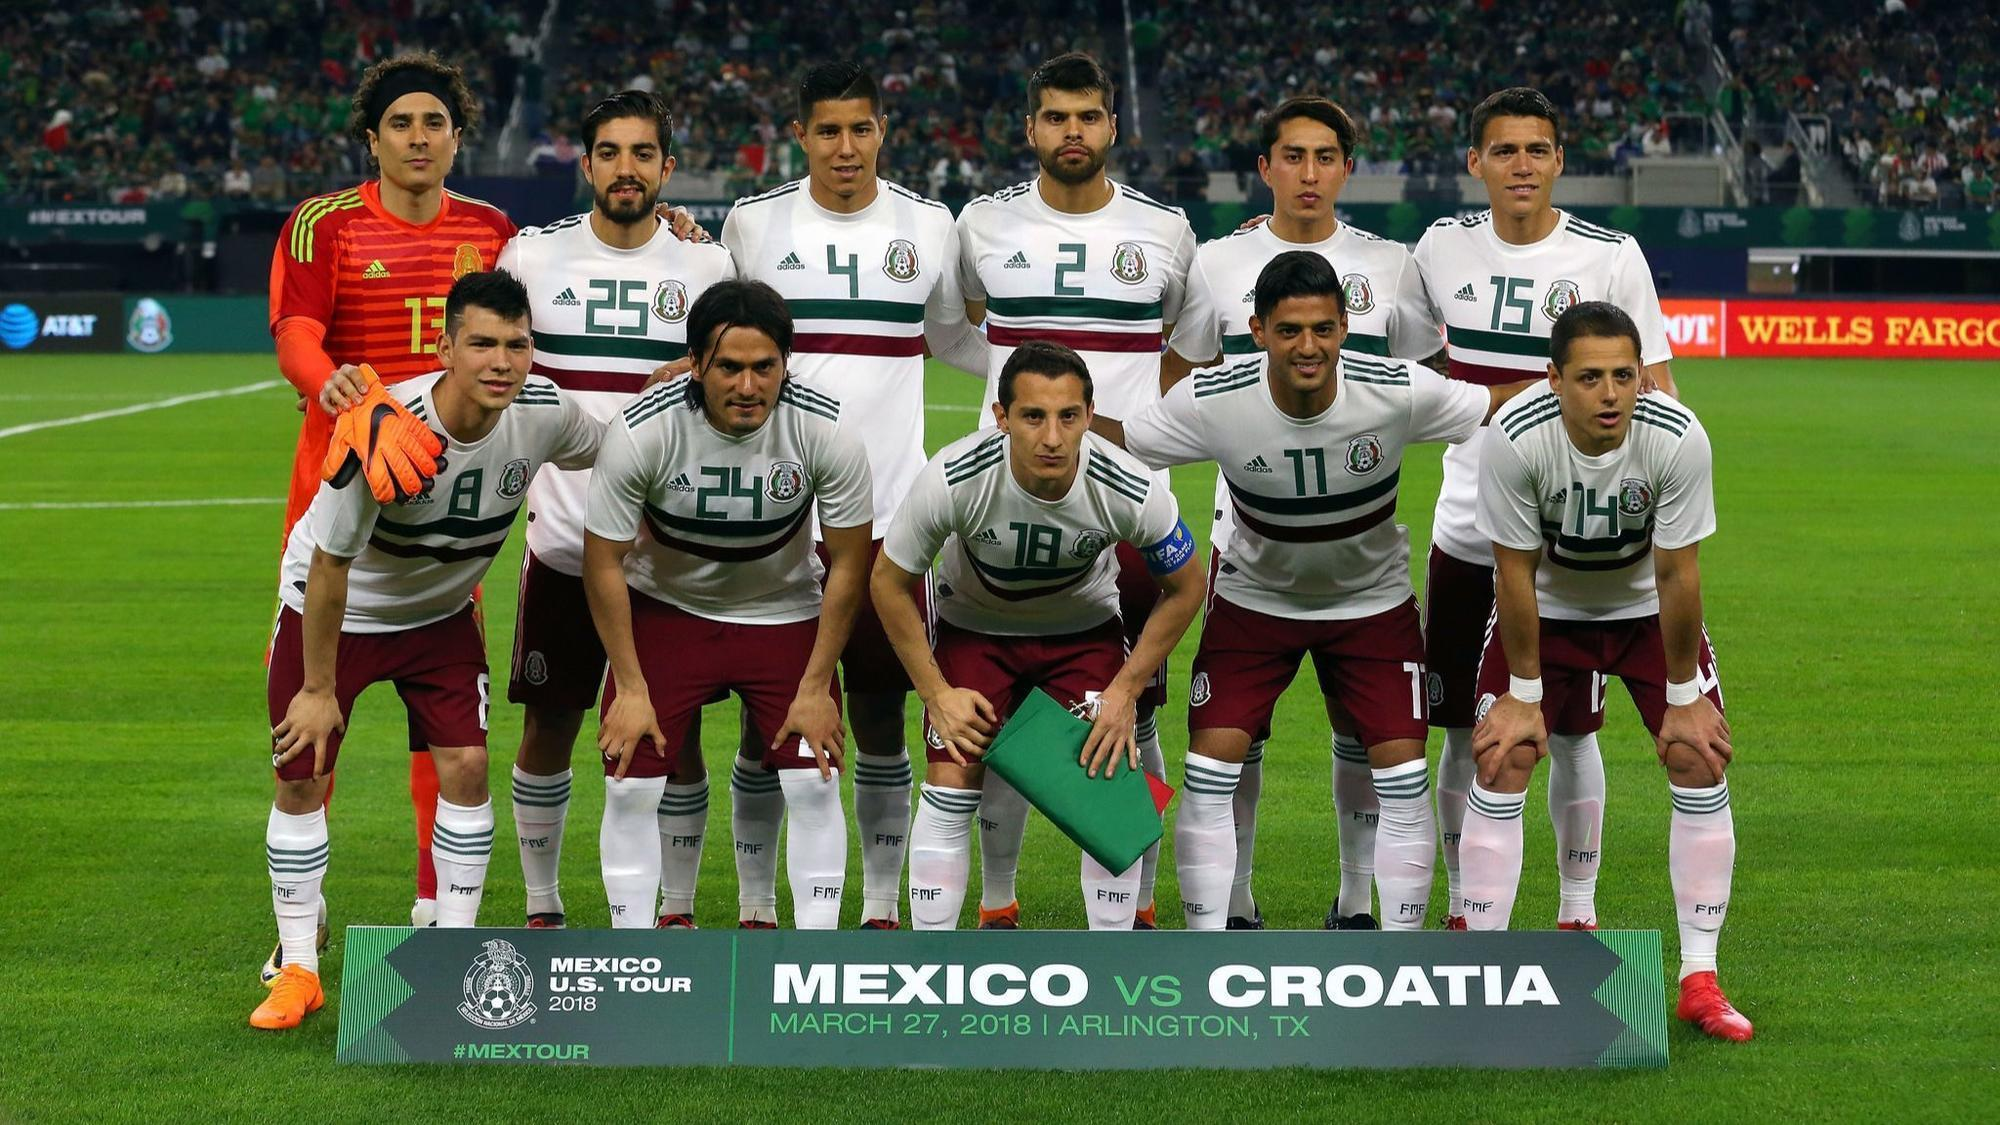 2000x1125 - Mexican Soccer Team 2018 2